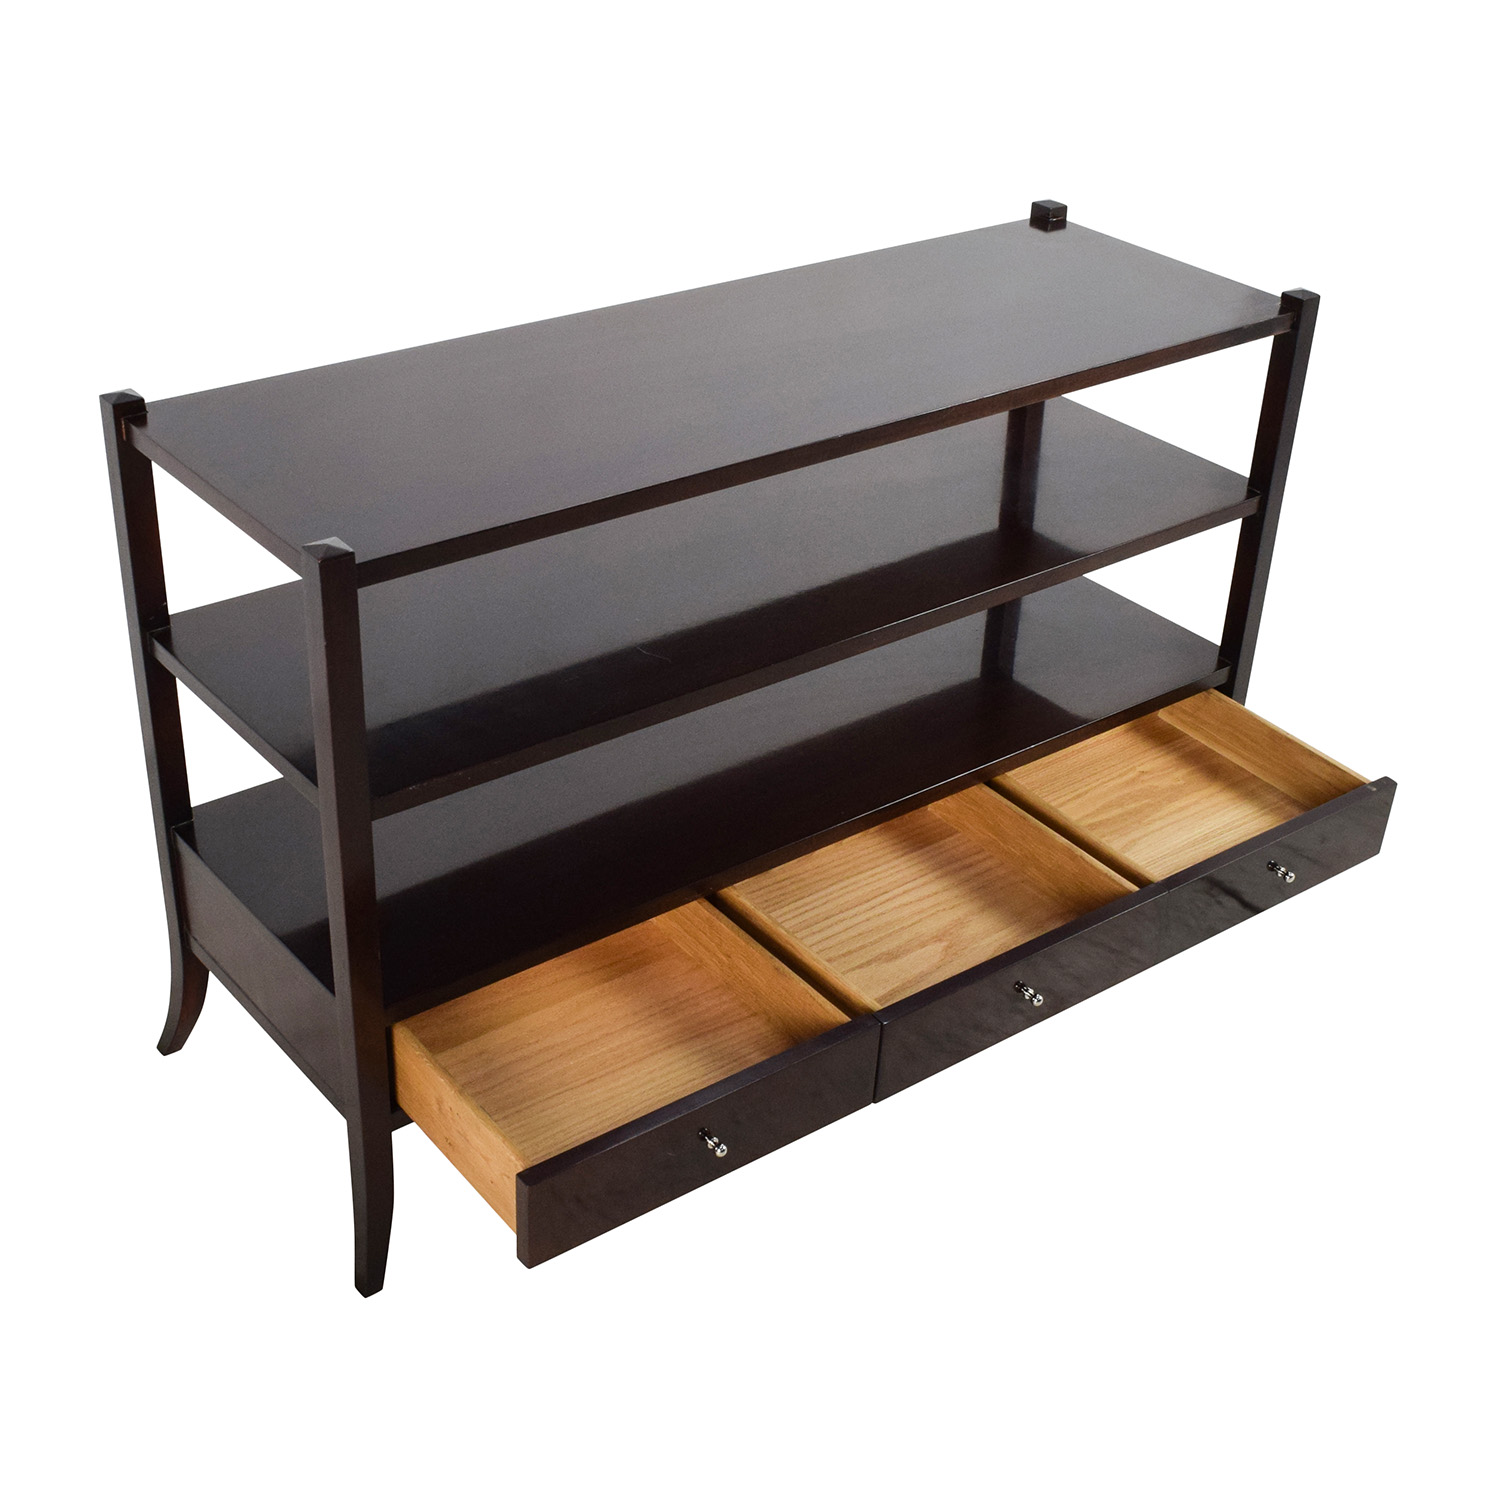 77 off baker baker sofa side table storage - Sofa table with cabinets ...